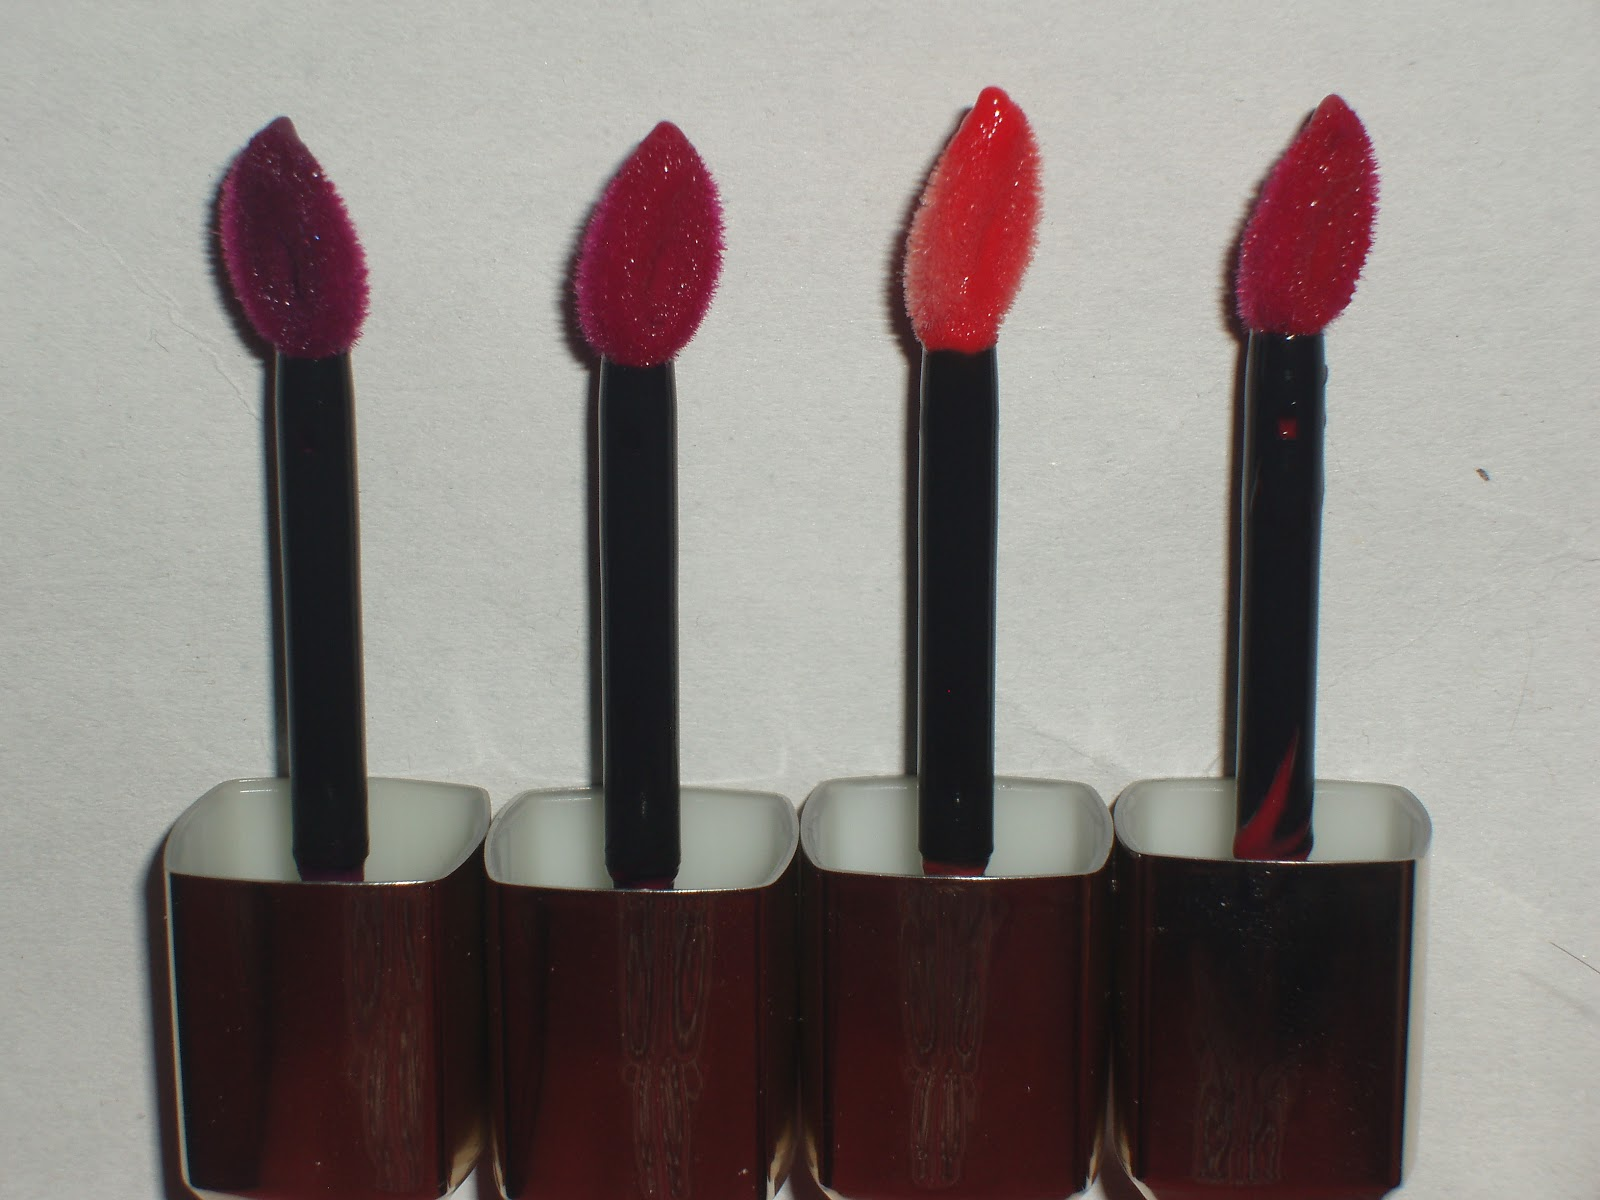 Loreal color caresse by color rich lipstick - L Oreal Colour Caresse Wet Shine Stains Are A Cross Between A Stain And A Gloss The Formula Includes A Blend Of Light Hydrating Oils And Concentrated